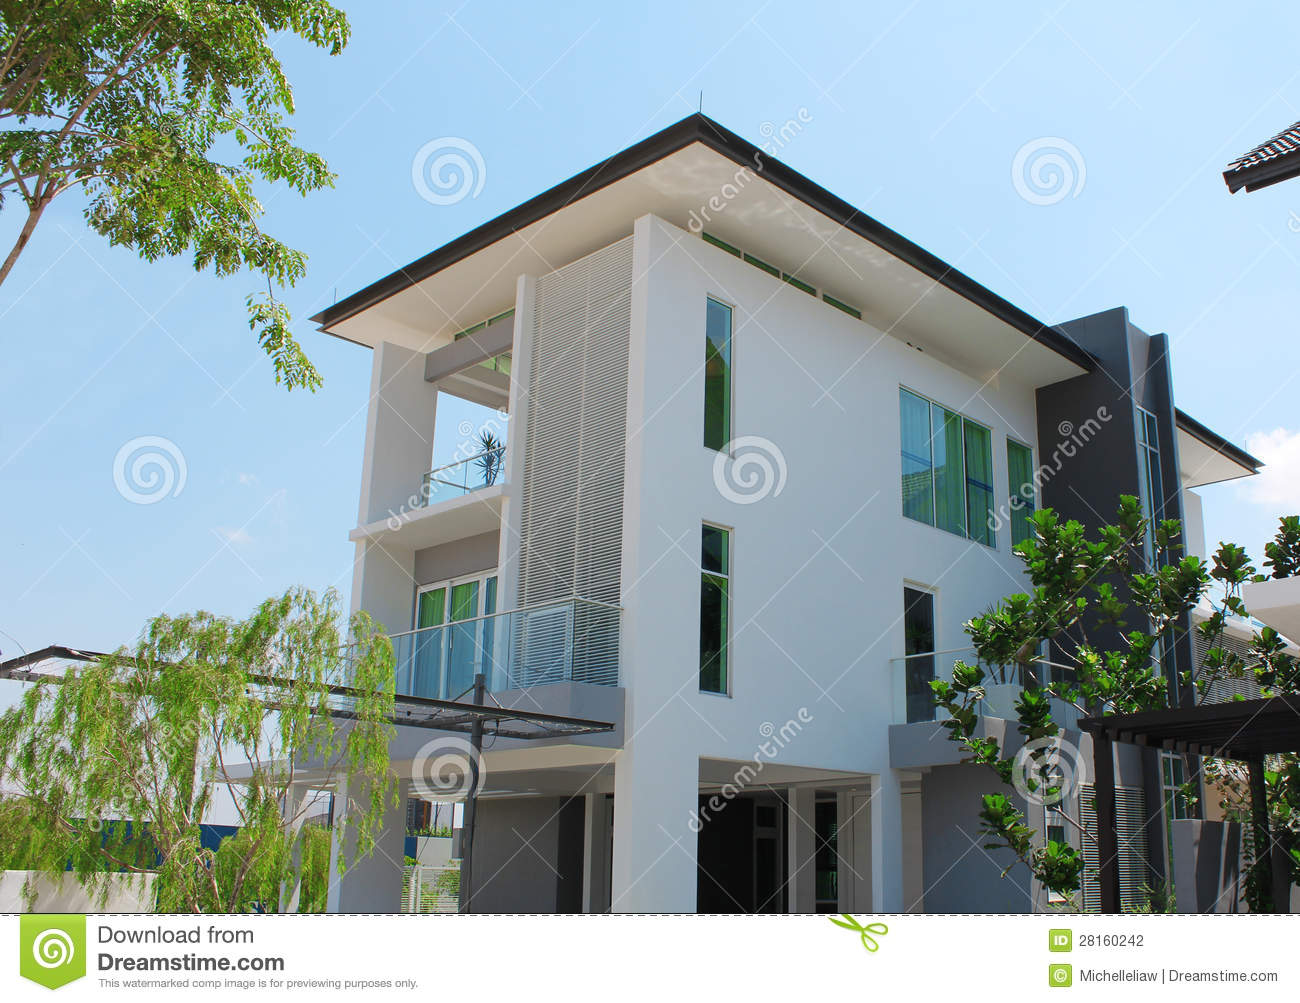 Modern 3 Storey Bungalow Design Stock Photo Image Of 3storey Malaysia 28160242